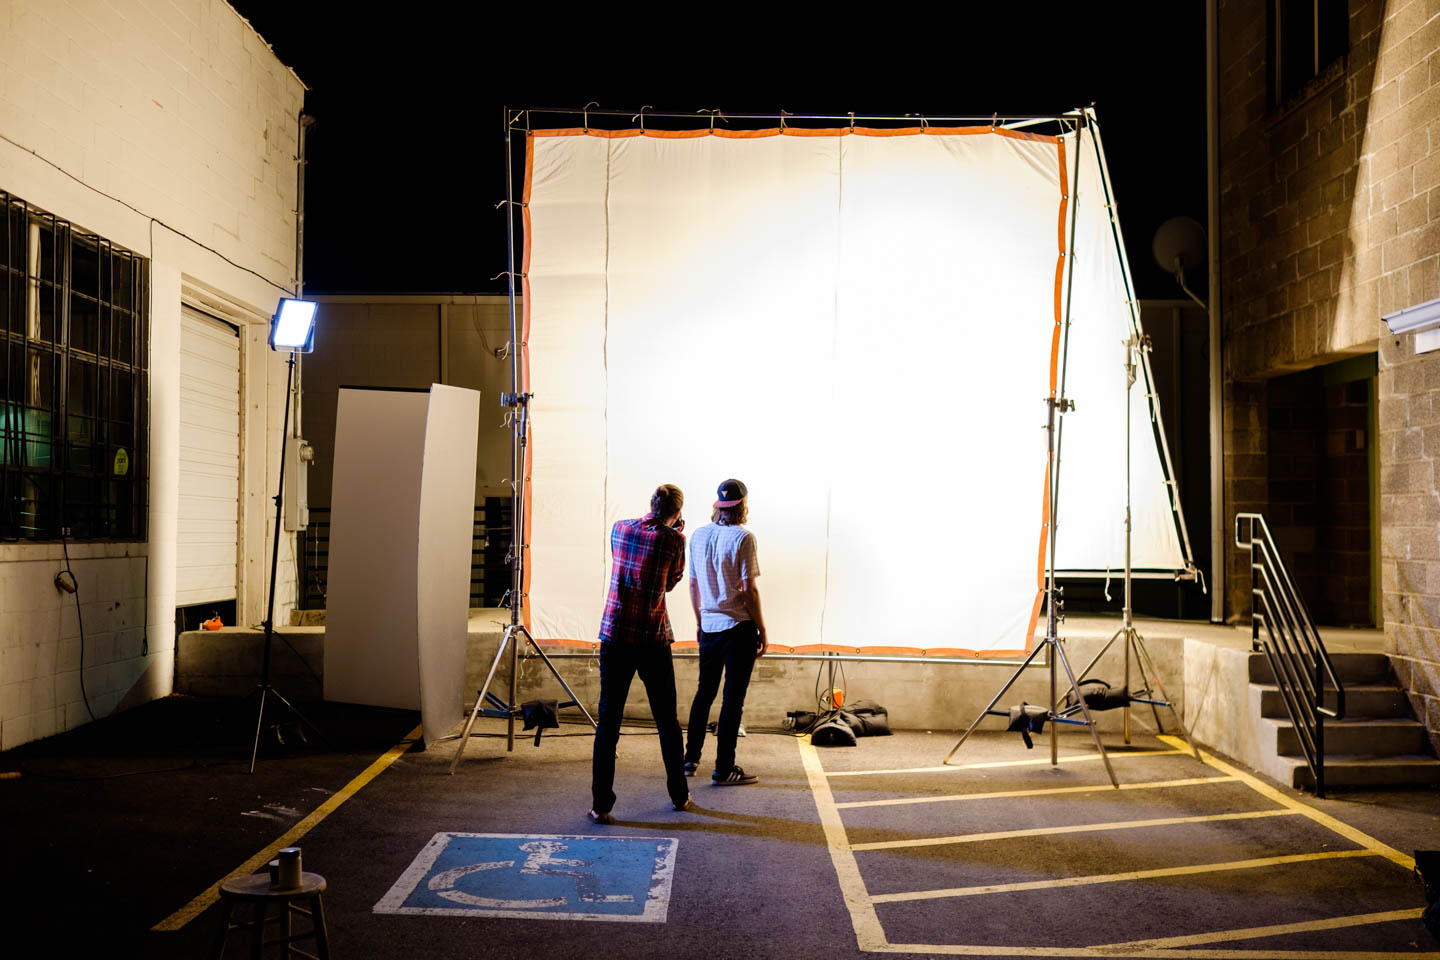 Giant light setup typically found at movie sets